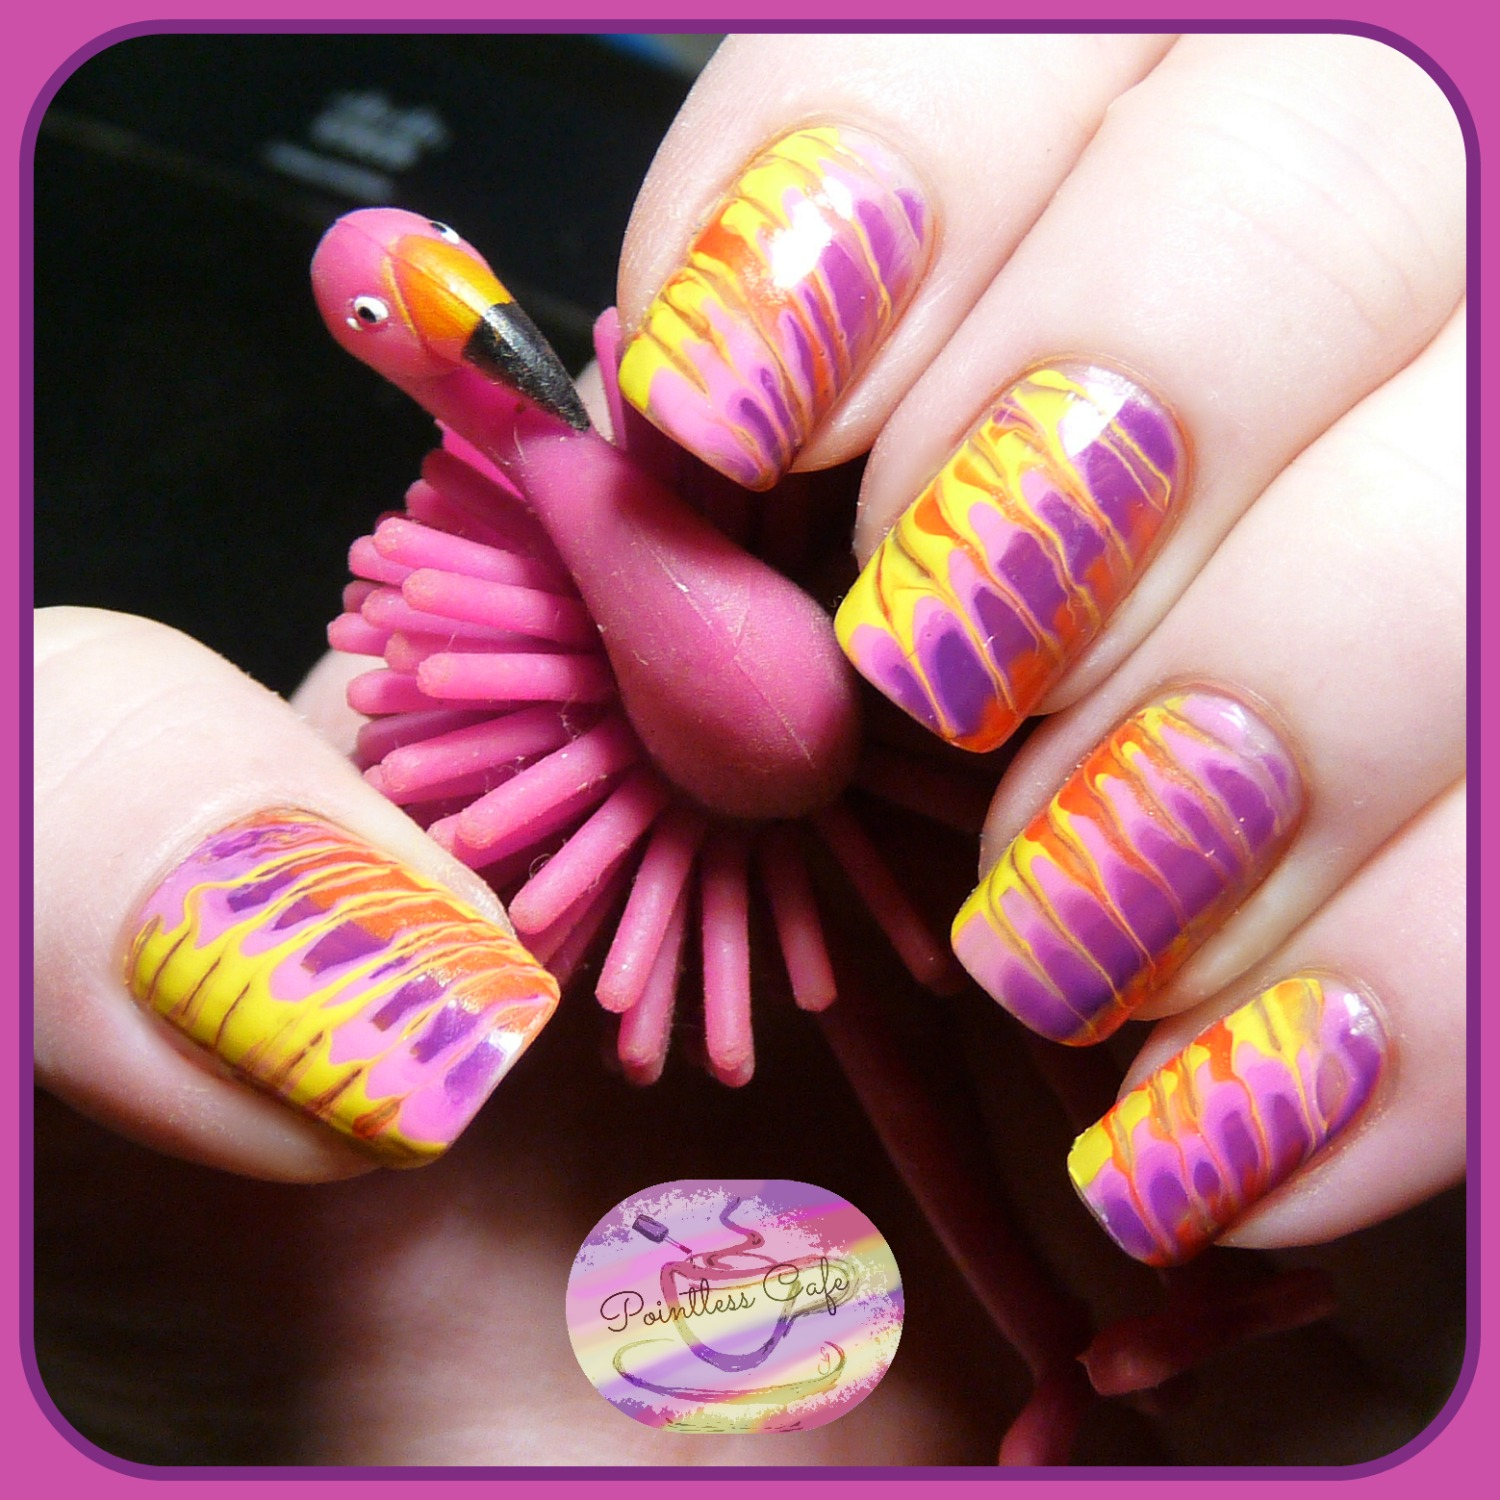 Toothpick Nail Art Designs: 13 Toothpick Nail Designs Images